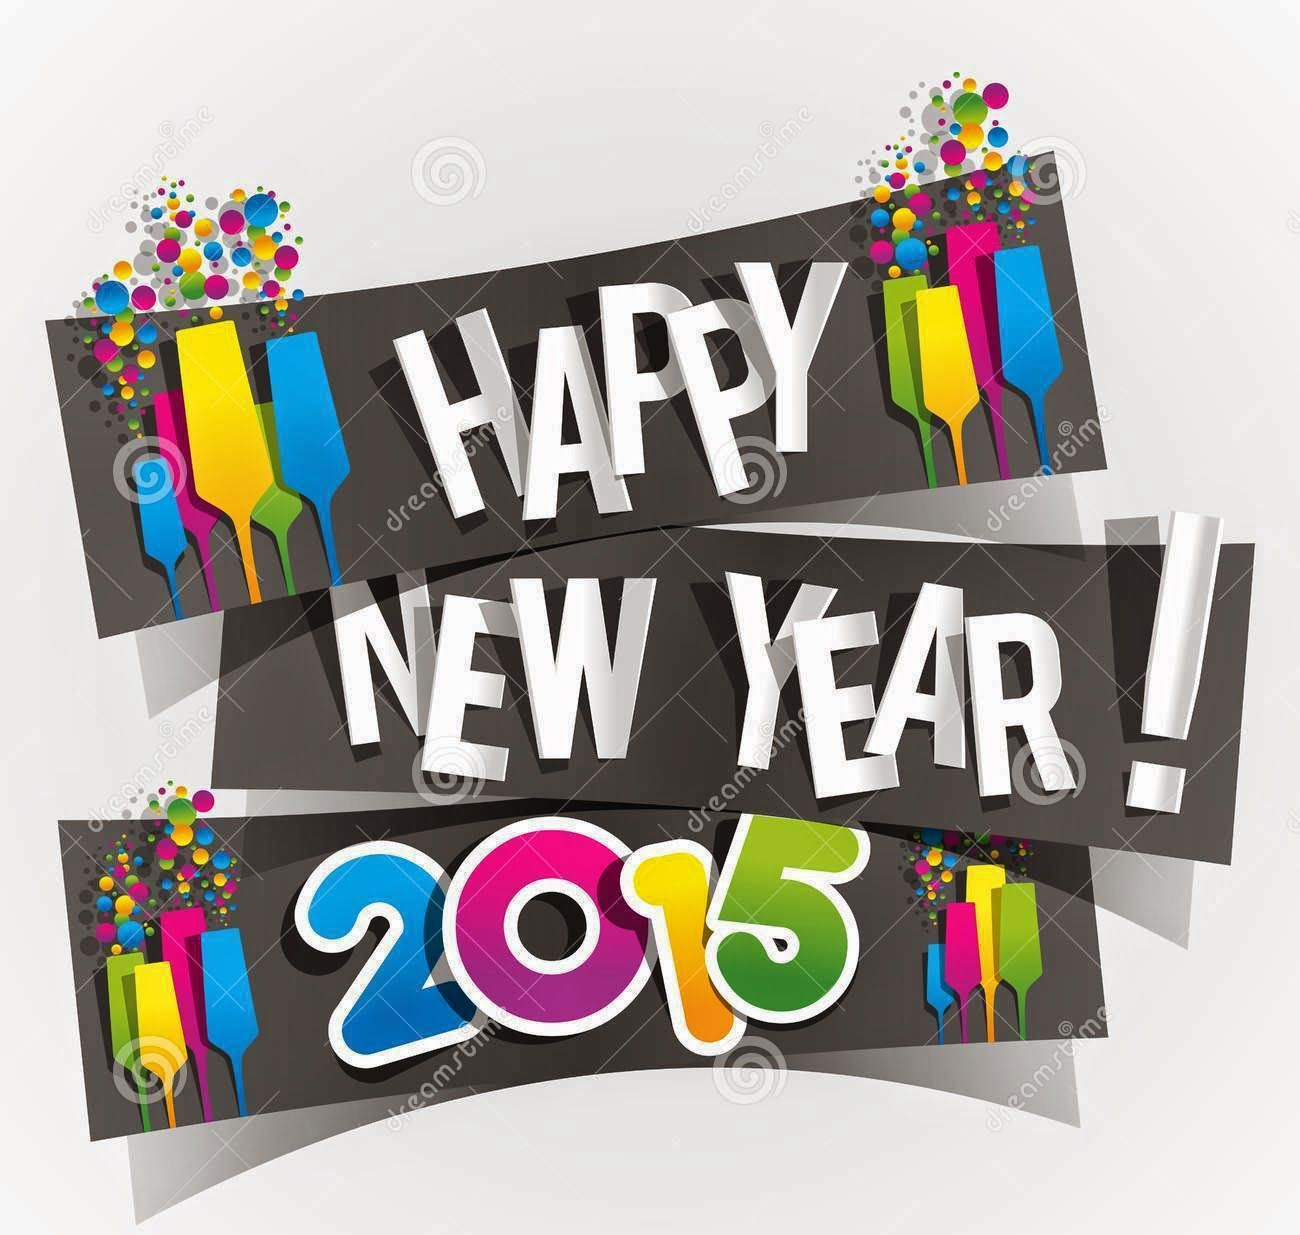 Greeting Happy New Year Wishes 2015 Special Wishing Wallpapers